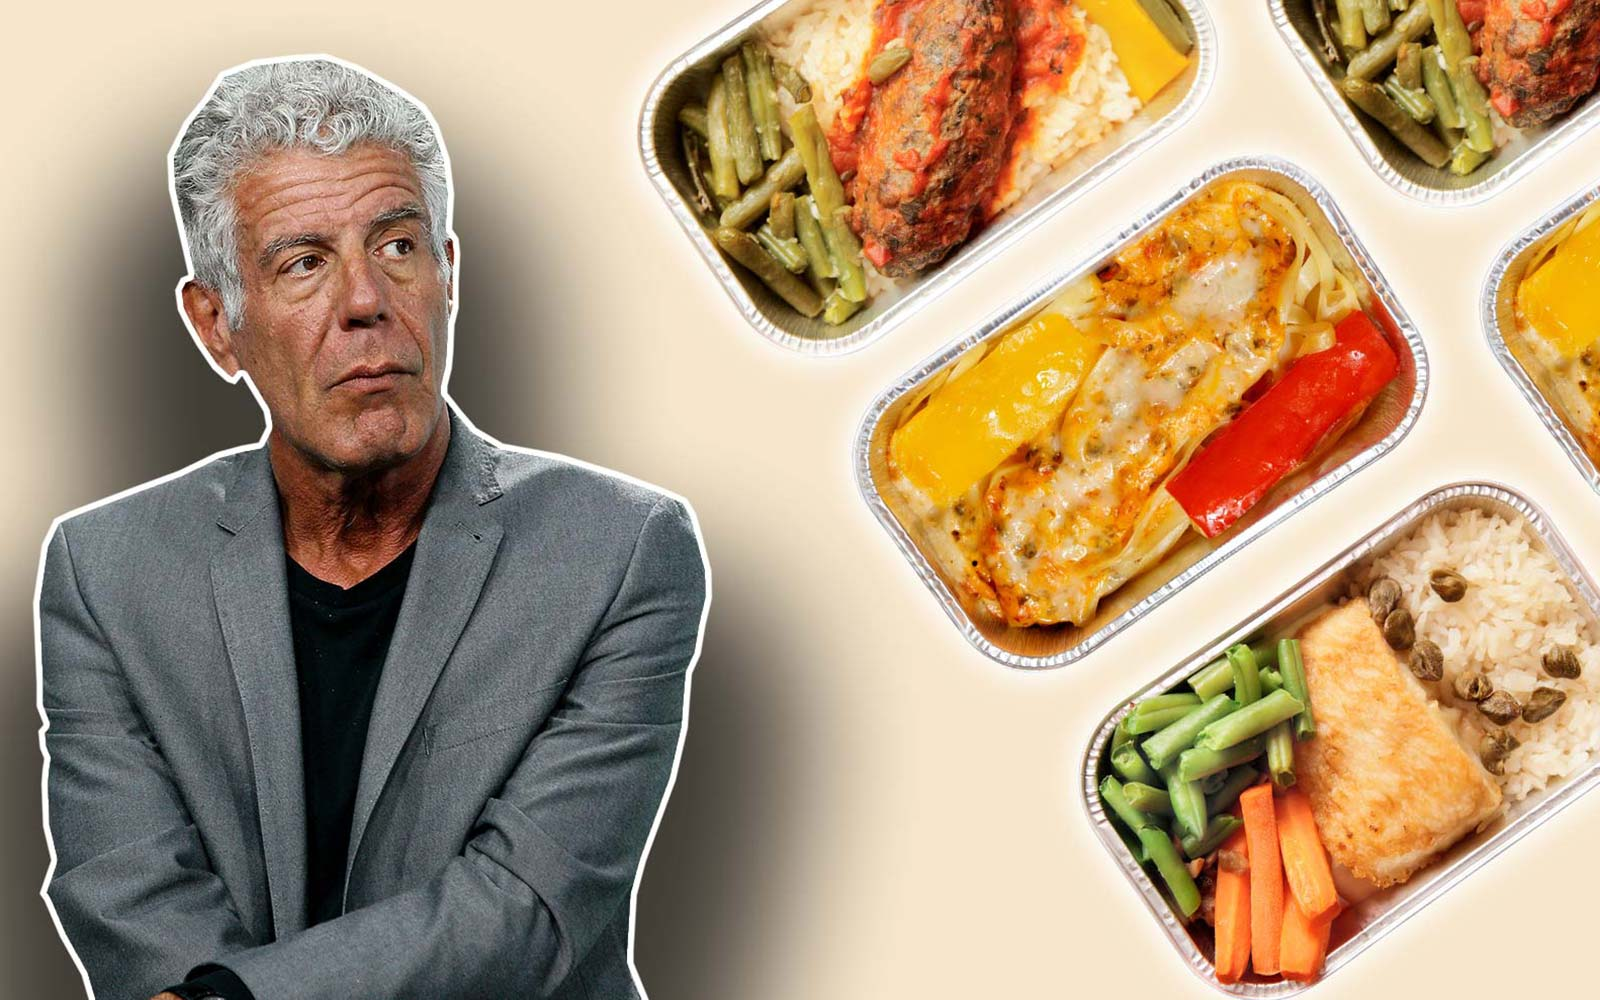 anthony bourdain says this is the best starter chef 39 s knife food wine. Black Bedroom Furniture Sets. Home Design Ideas